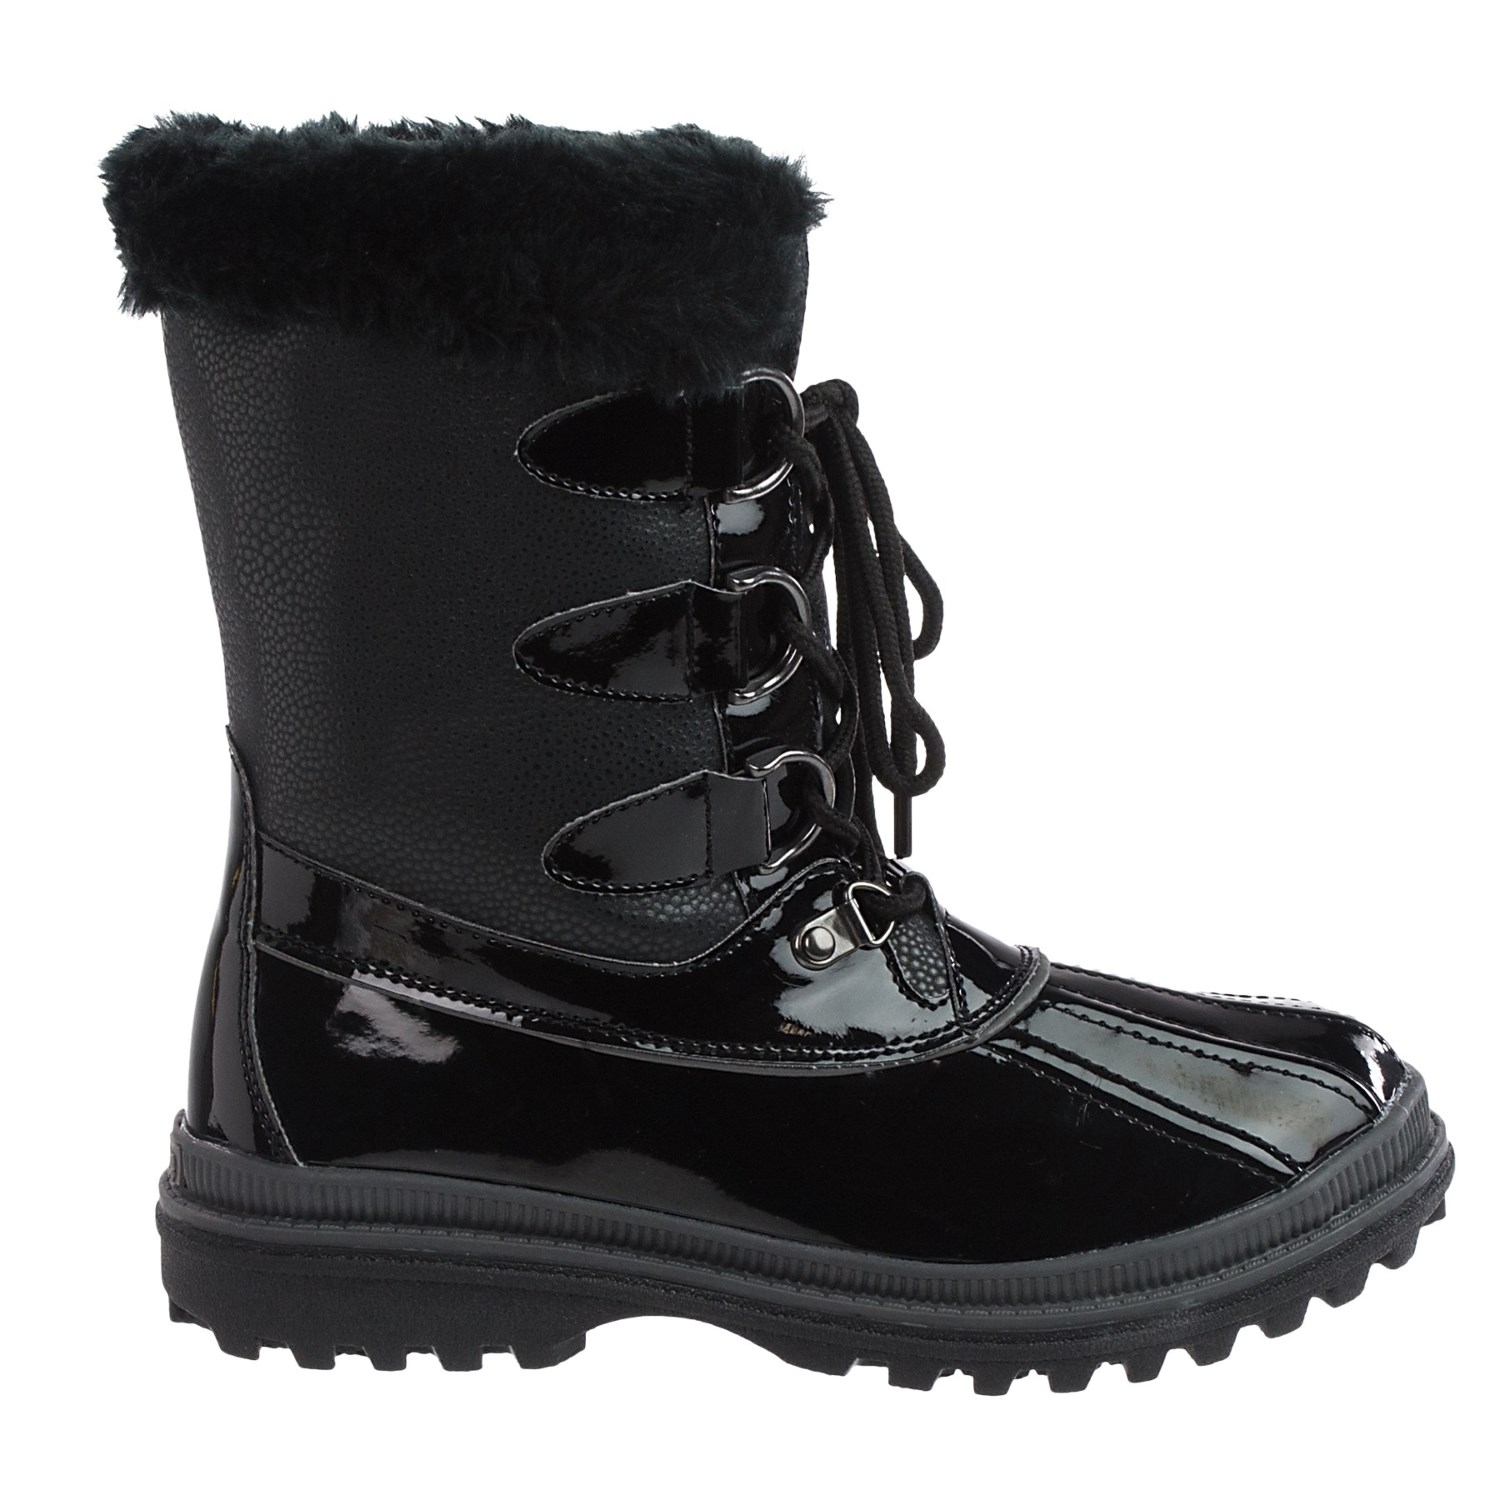 Canadian Snow Boots For Women | Santa Barbara Institute for ...